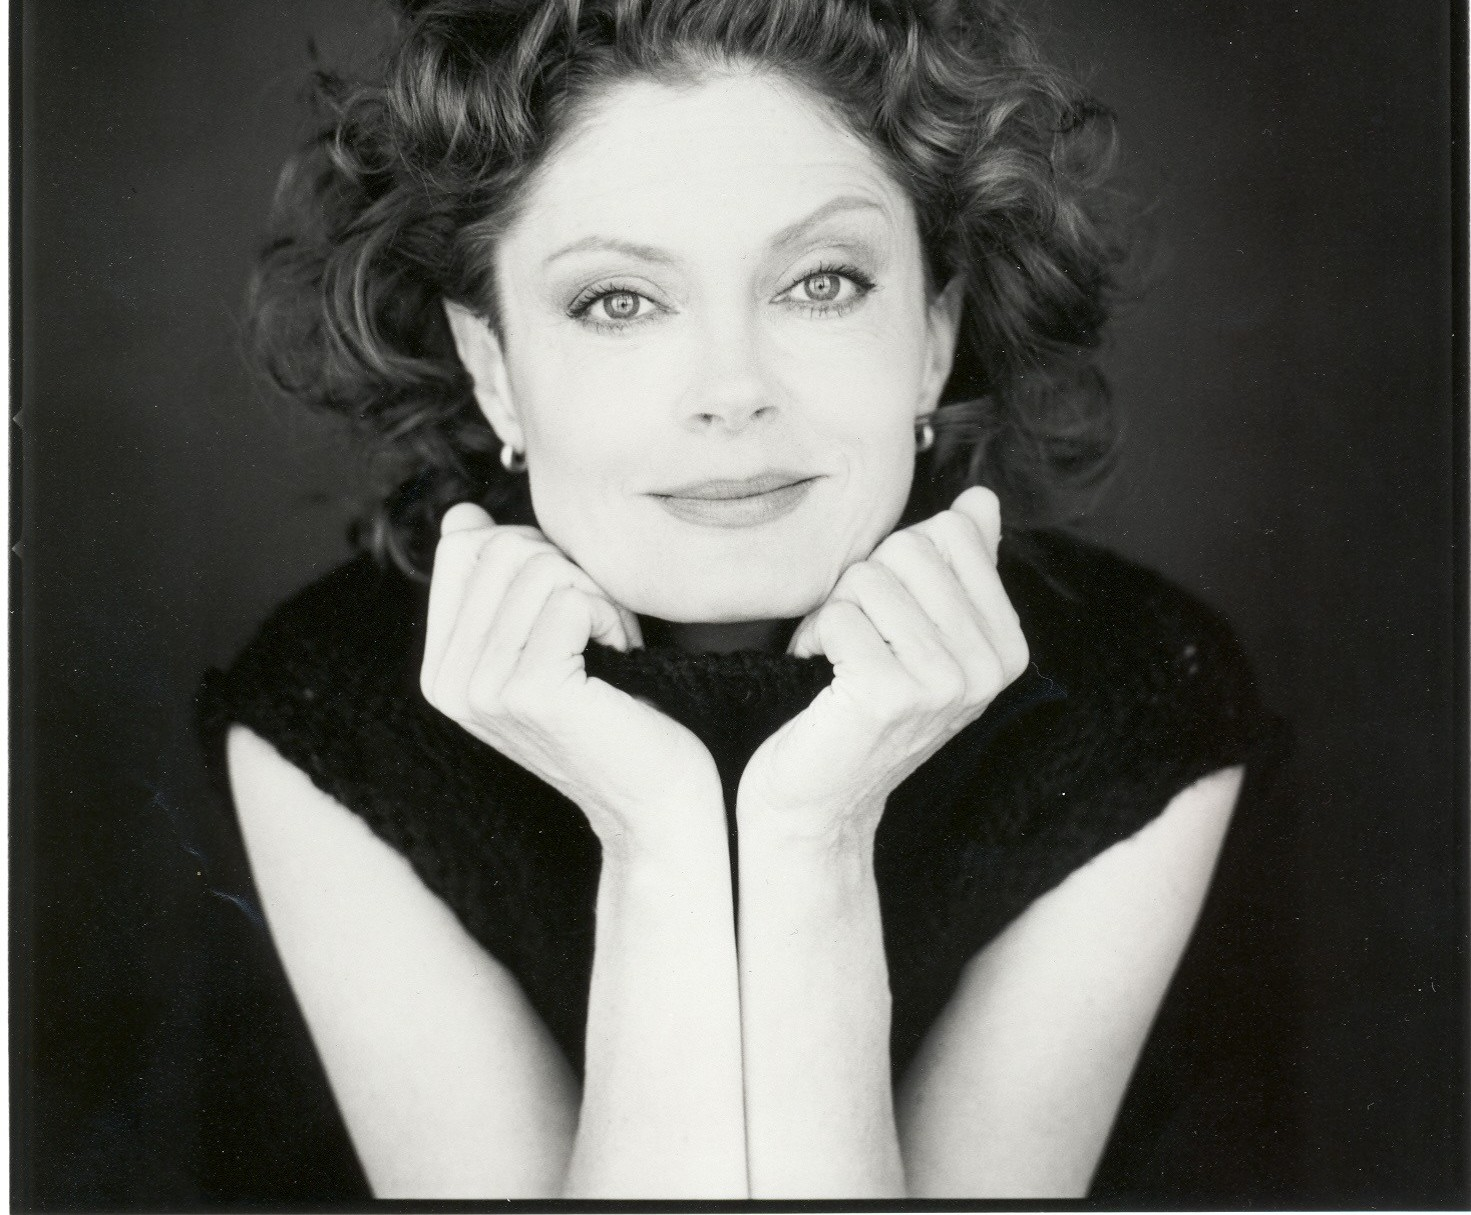 susan_sarandon_ipad_wallpaper-other_CROPPED